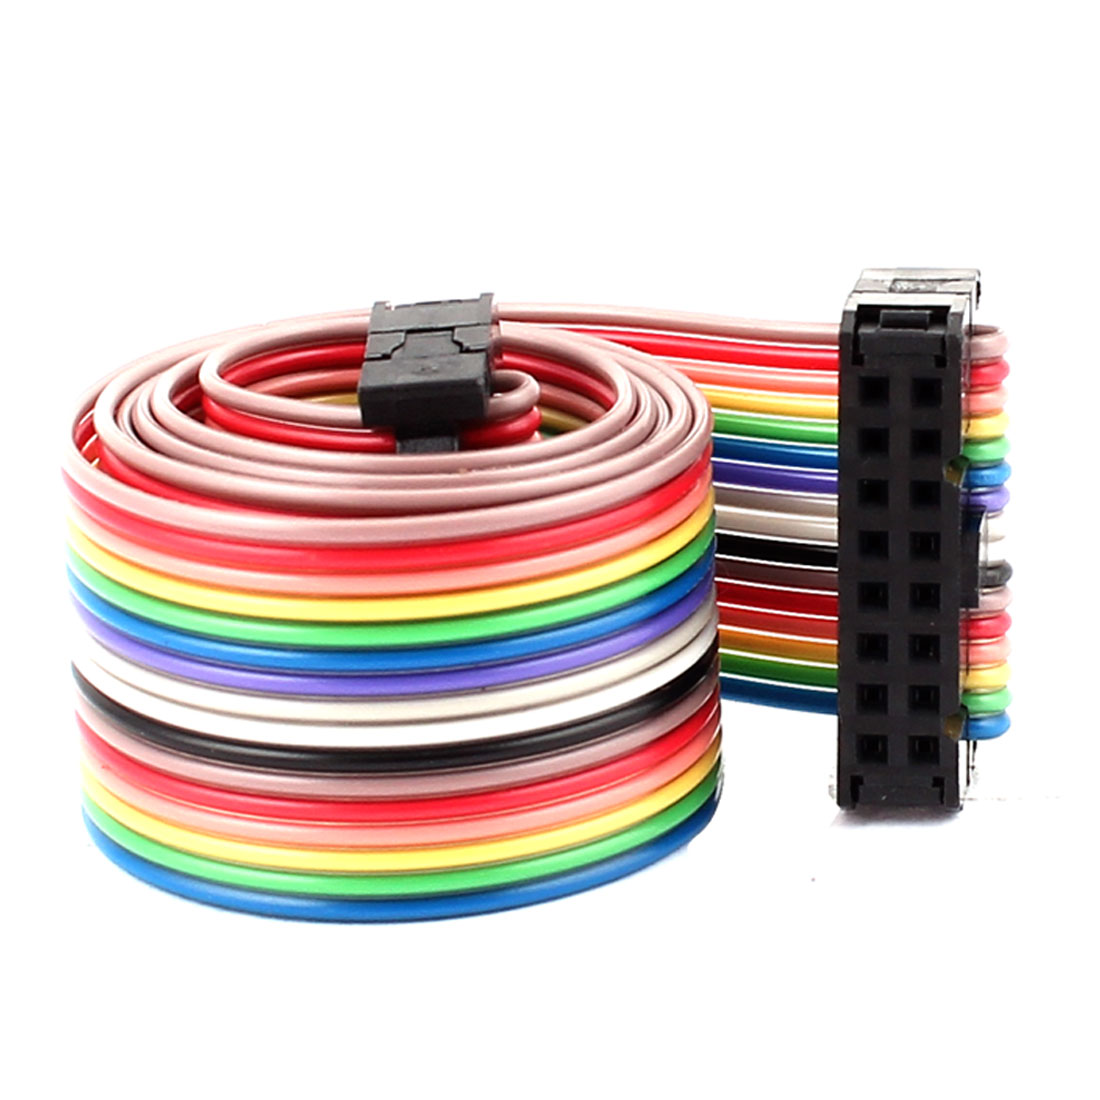 48cm 16pin 2.54mm Female to Female Breadboard IDC Wire Cable